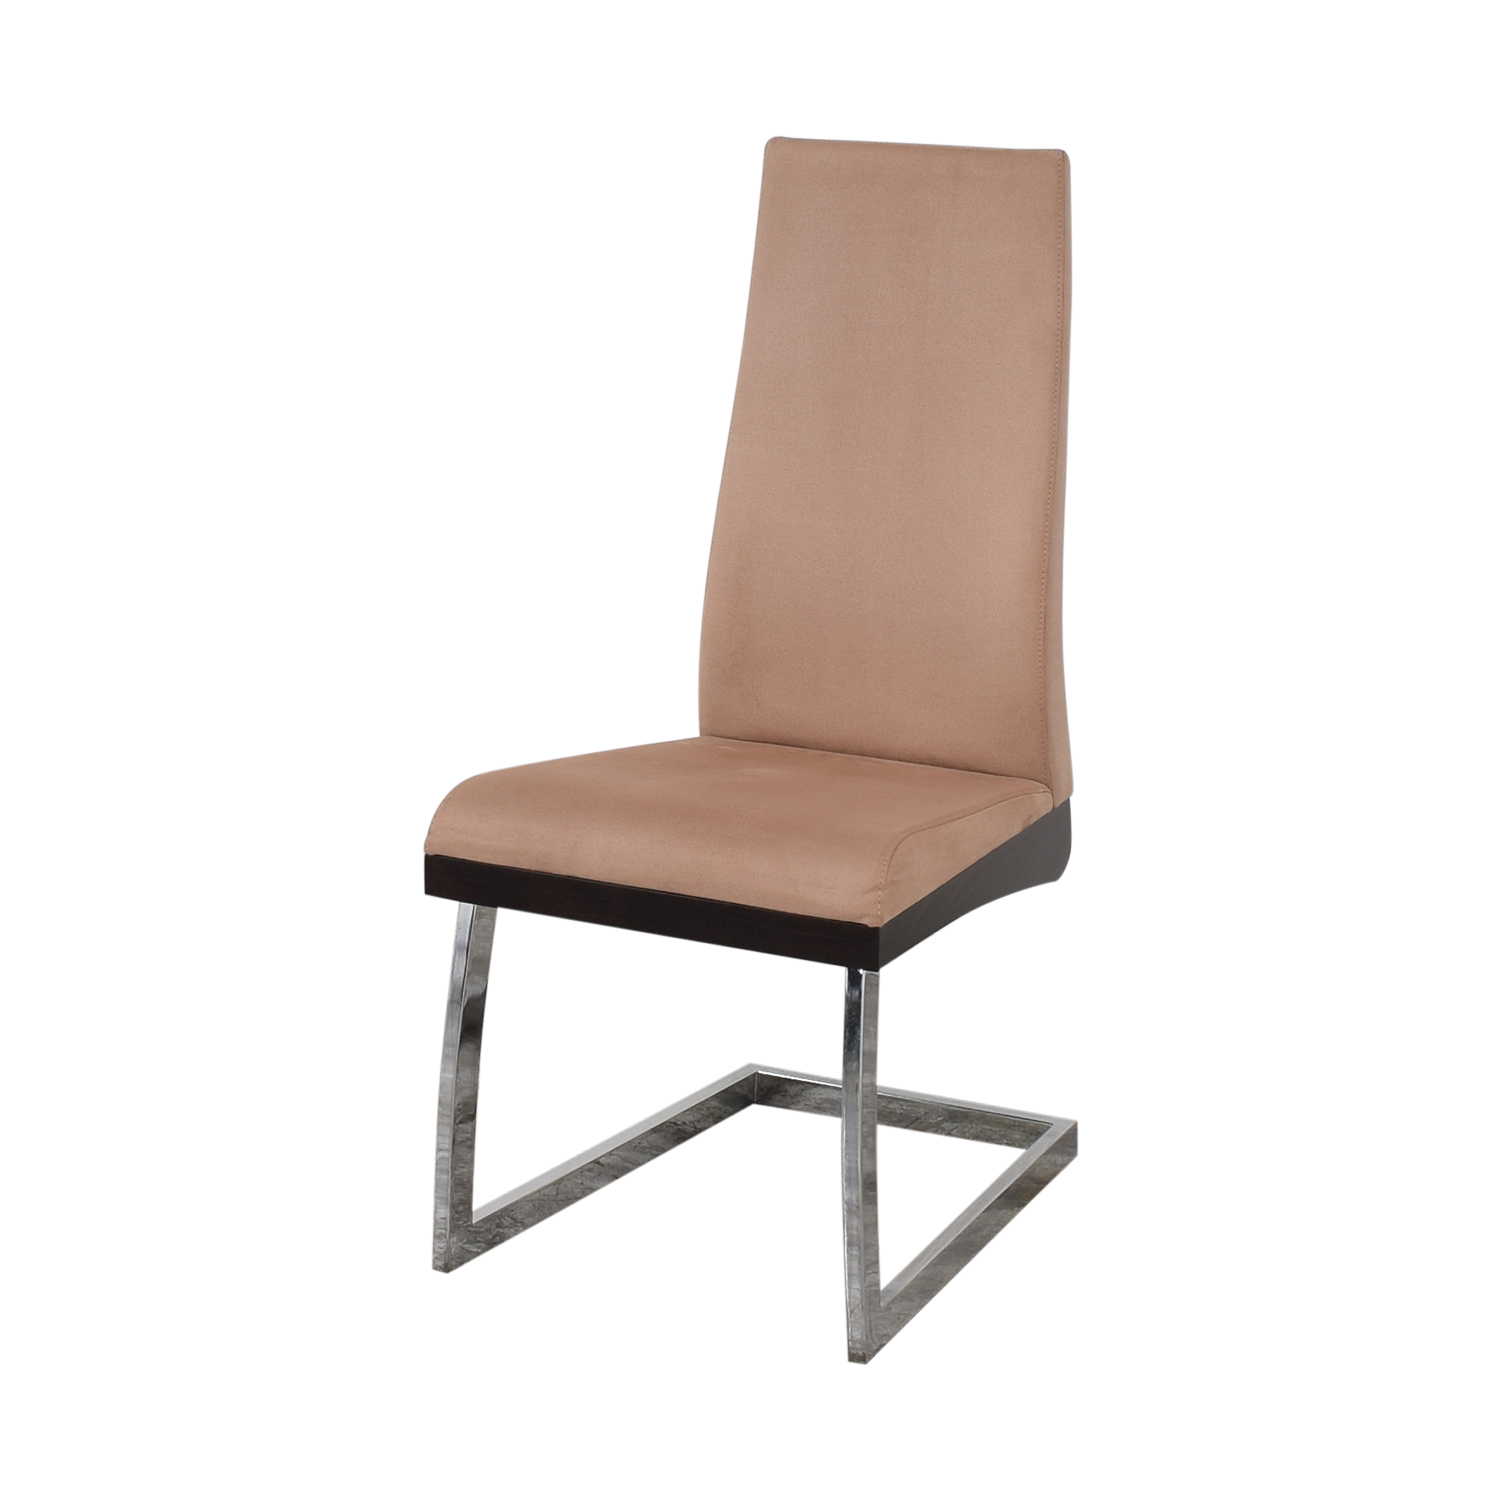 Costantini Pietro Dining Chairs / Chairs